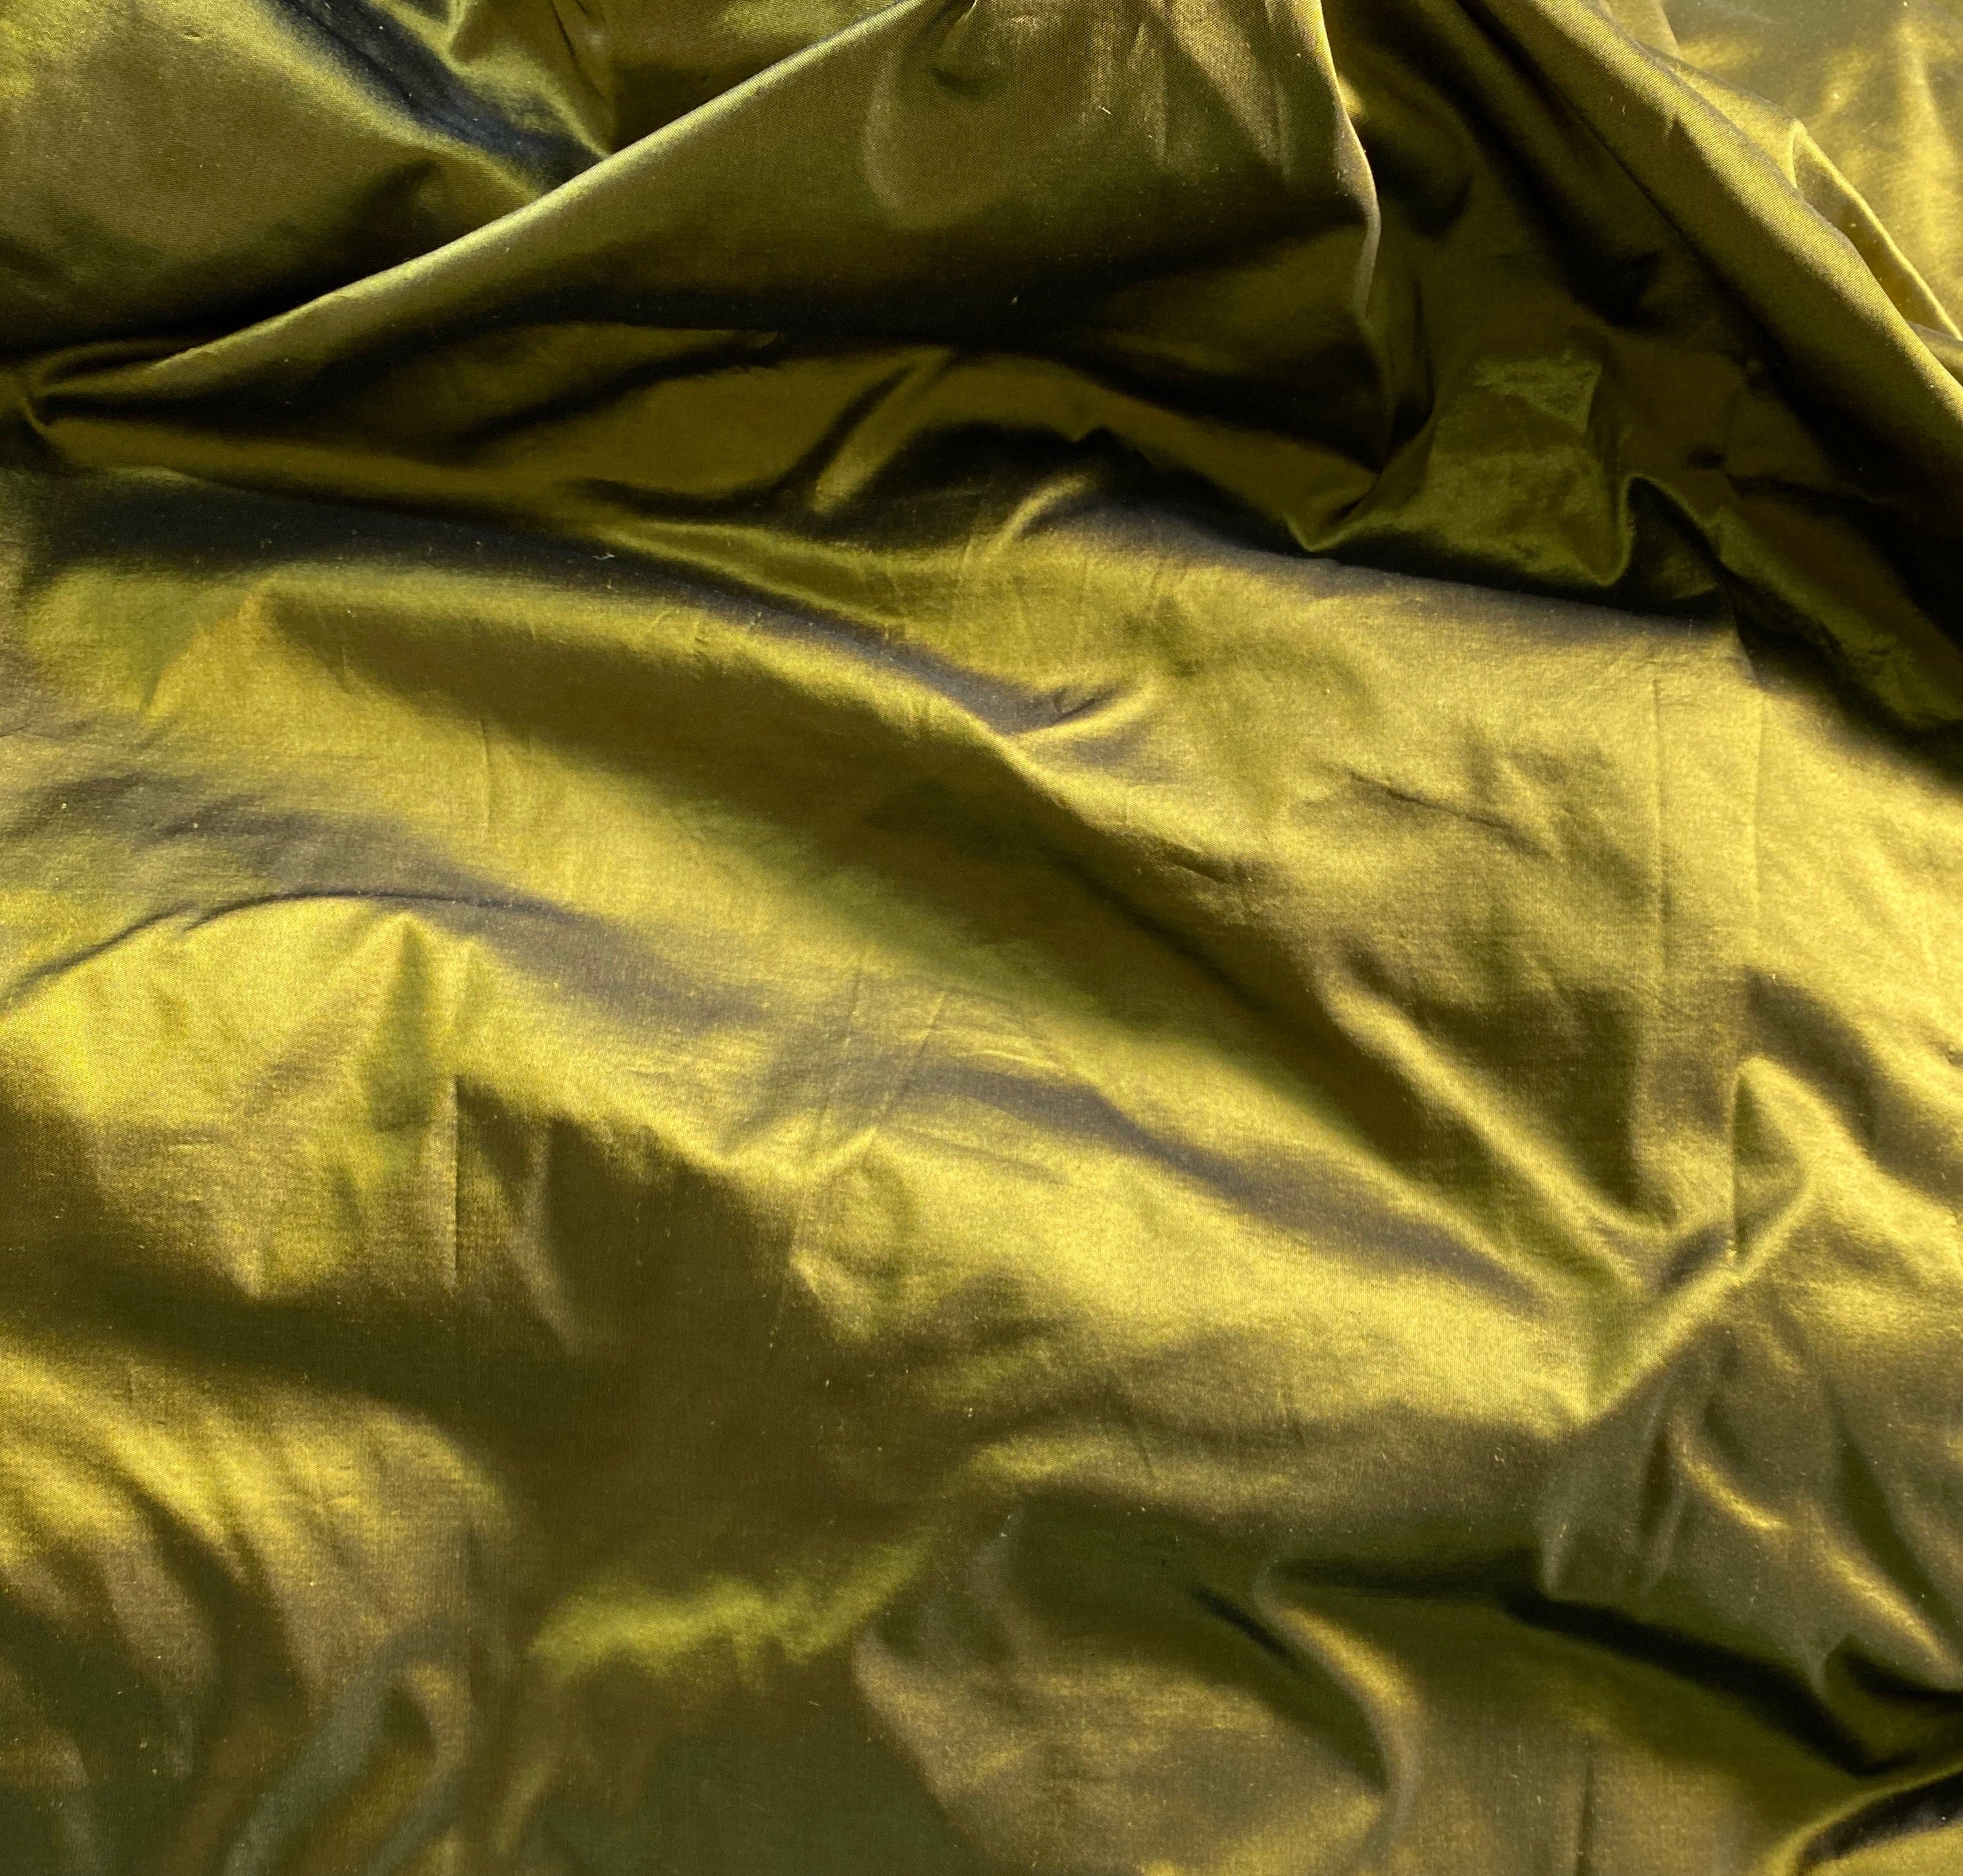 NEW Lady Lisa Designer 100% Silk Taffeta - Solid Olive with Black Iridescence